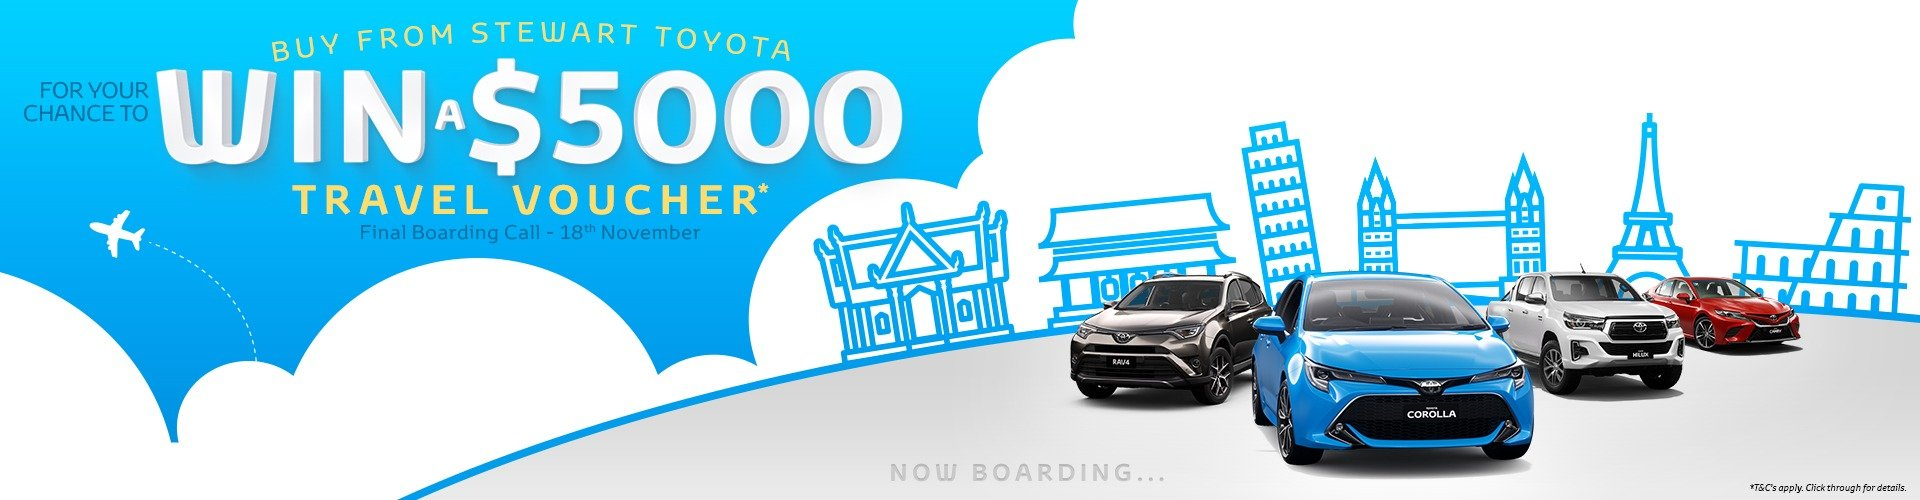 Stewart Toyota WIN $5000 Travel Voucher